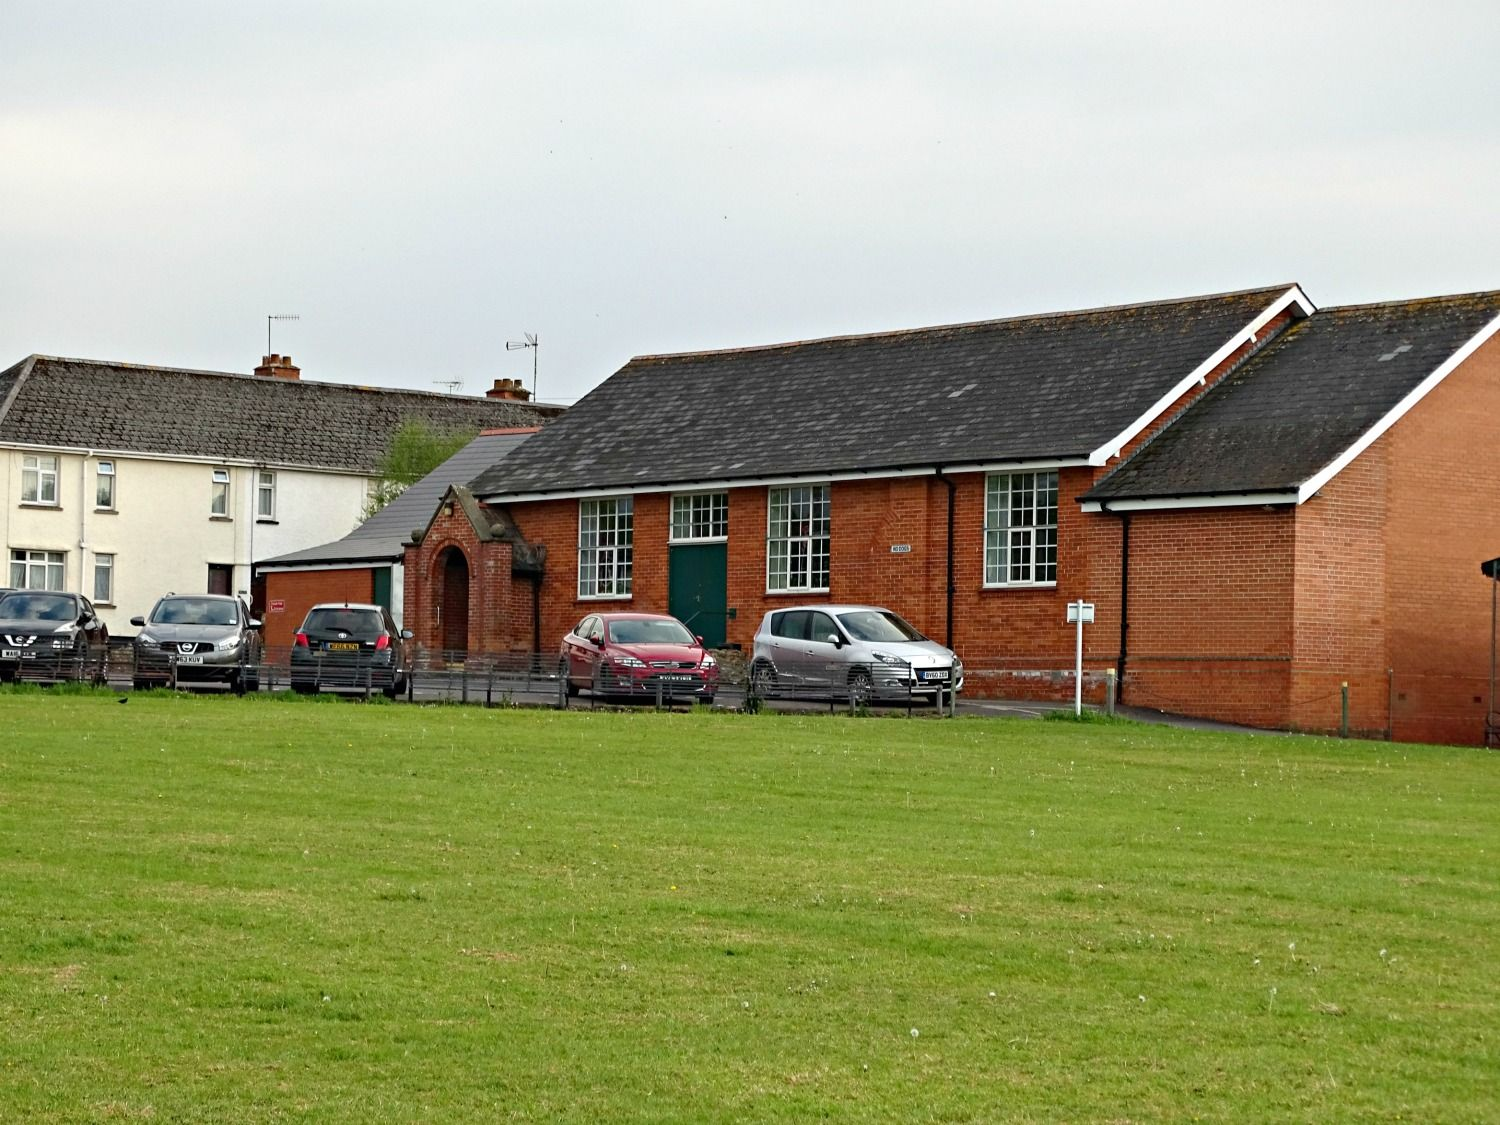 Outside of village hall